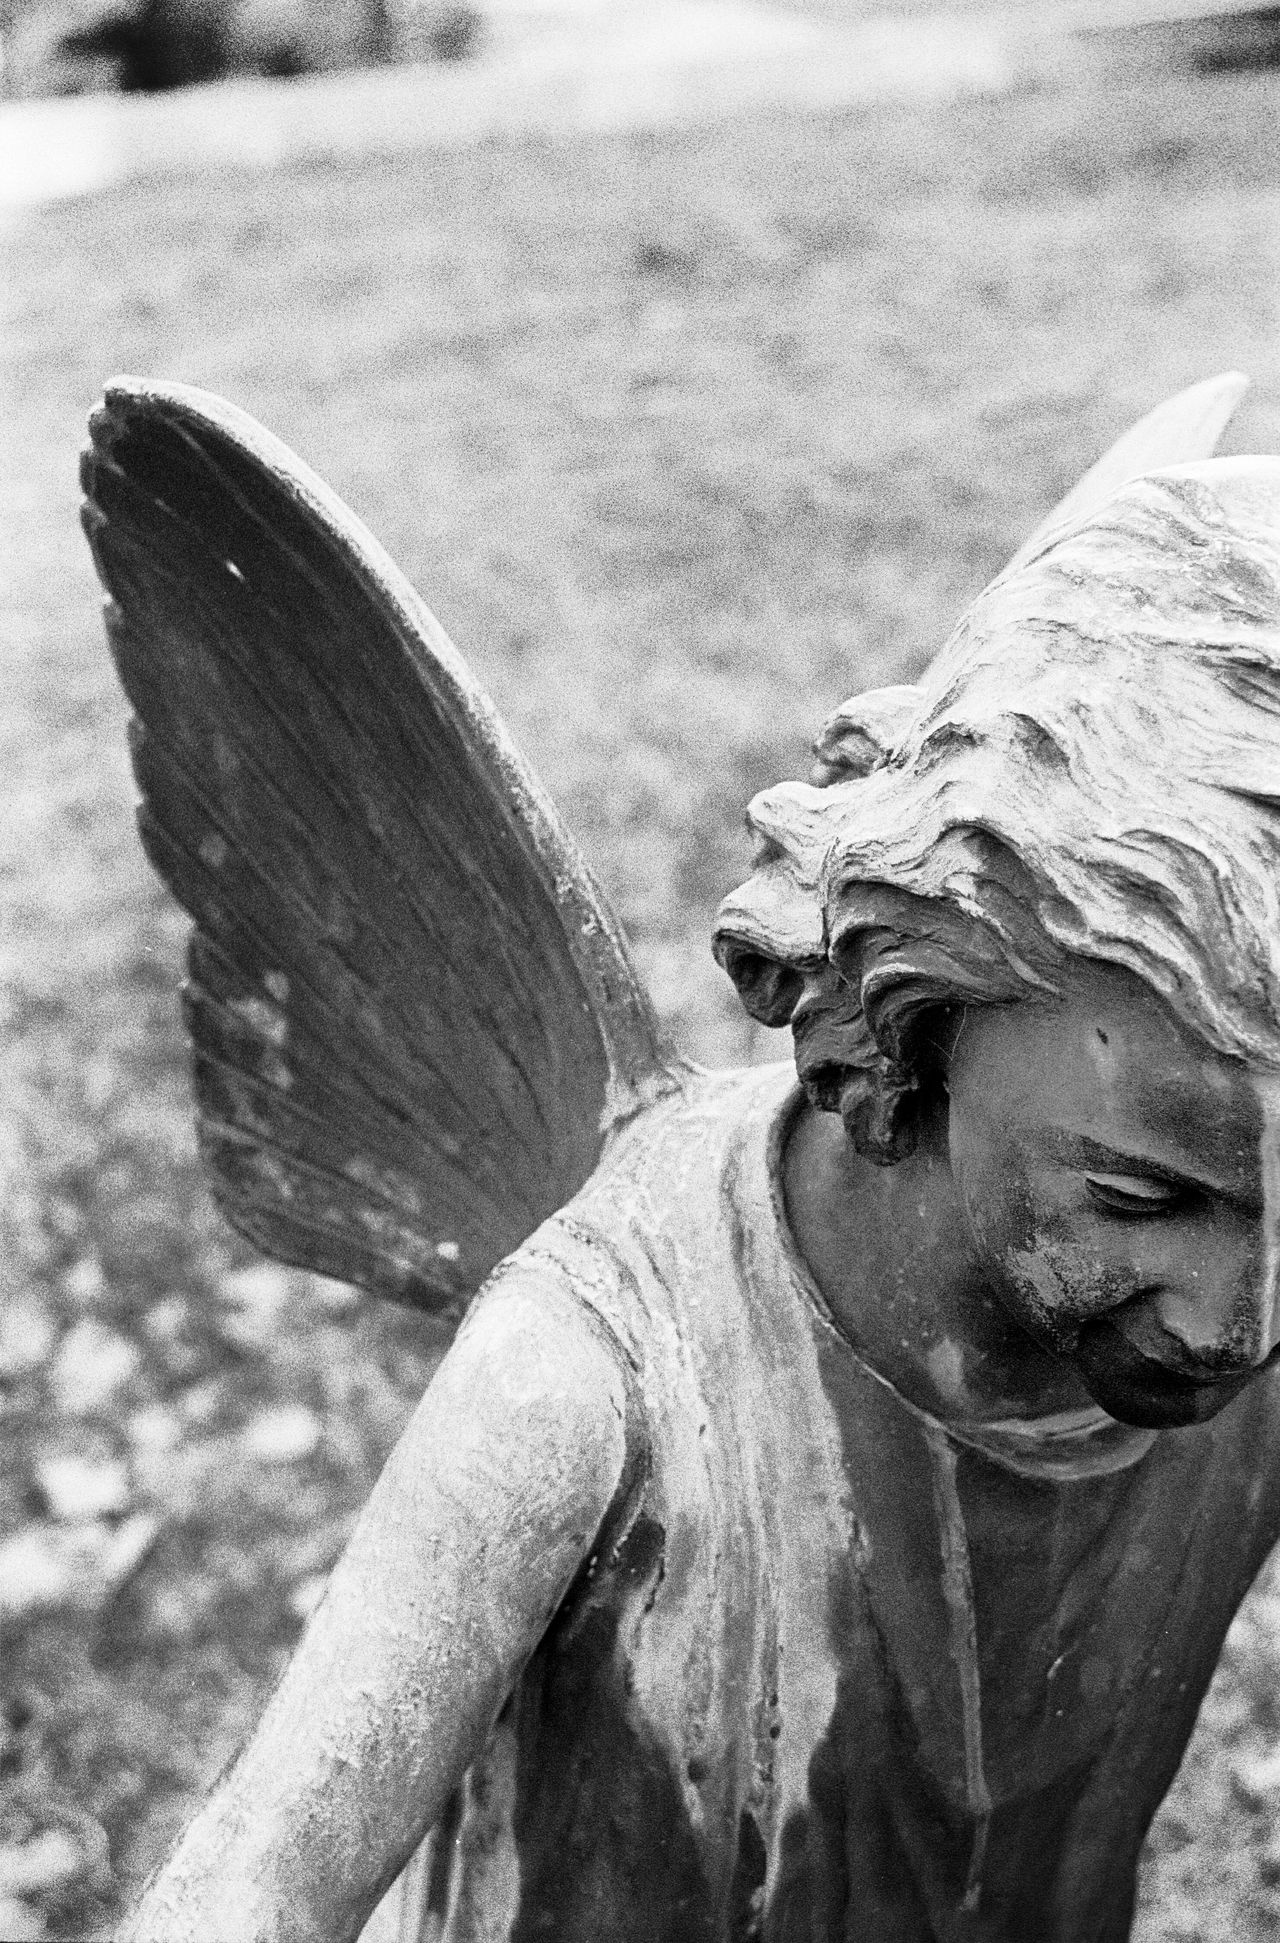 Angel Wings Angel Angel Statue Angelic Statue Film Photography Black And White Photography Black & White